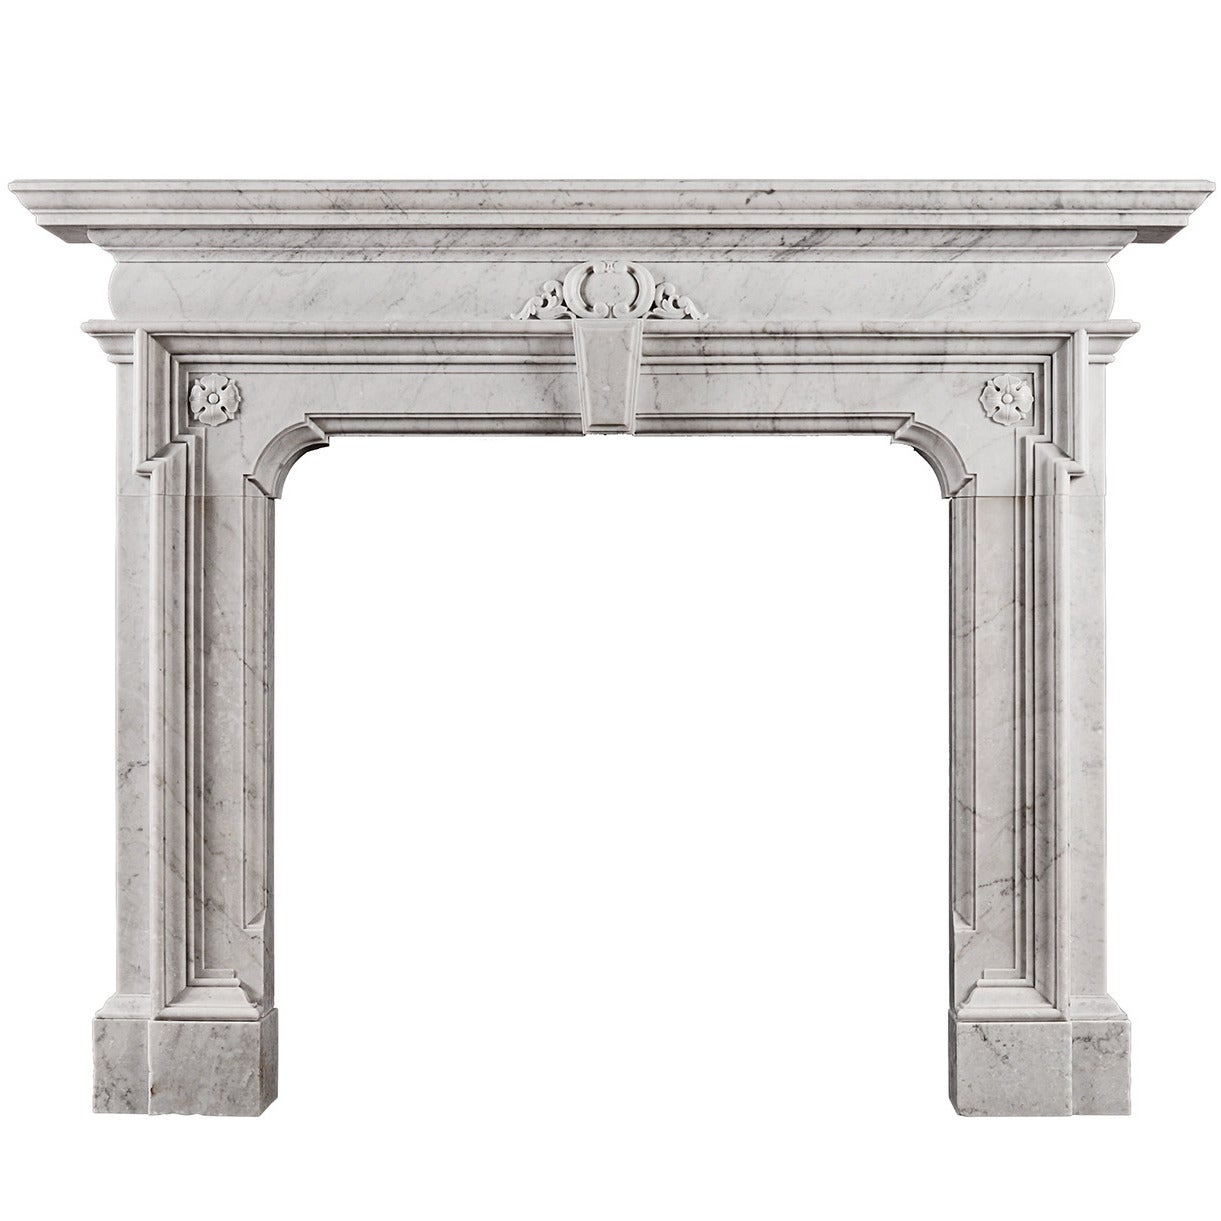 Mannerist Fireplace in Italian Carrara Marble